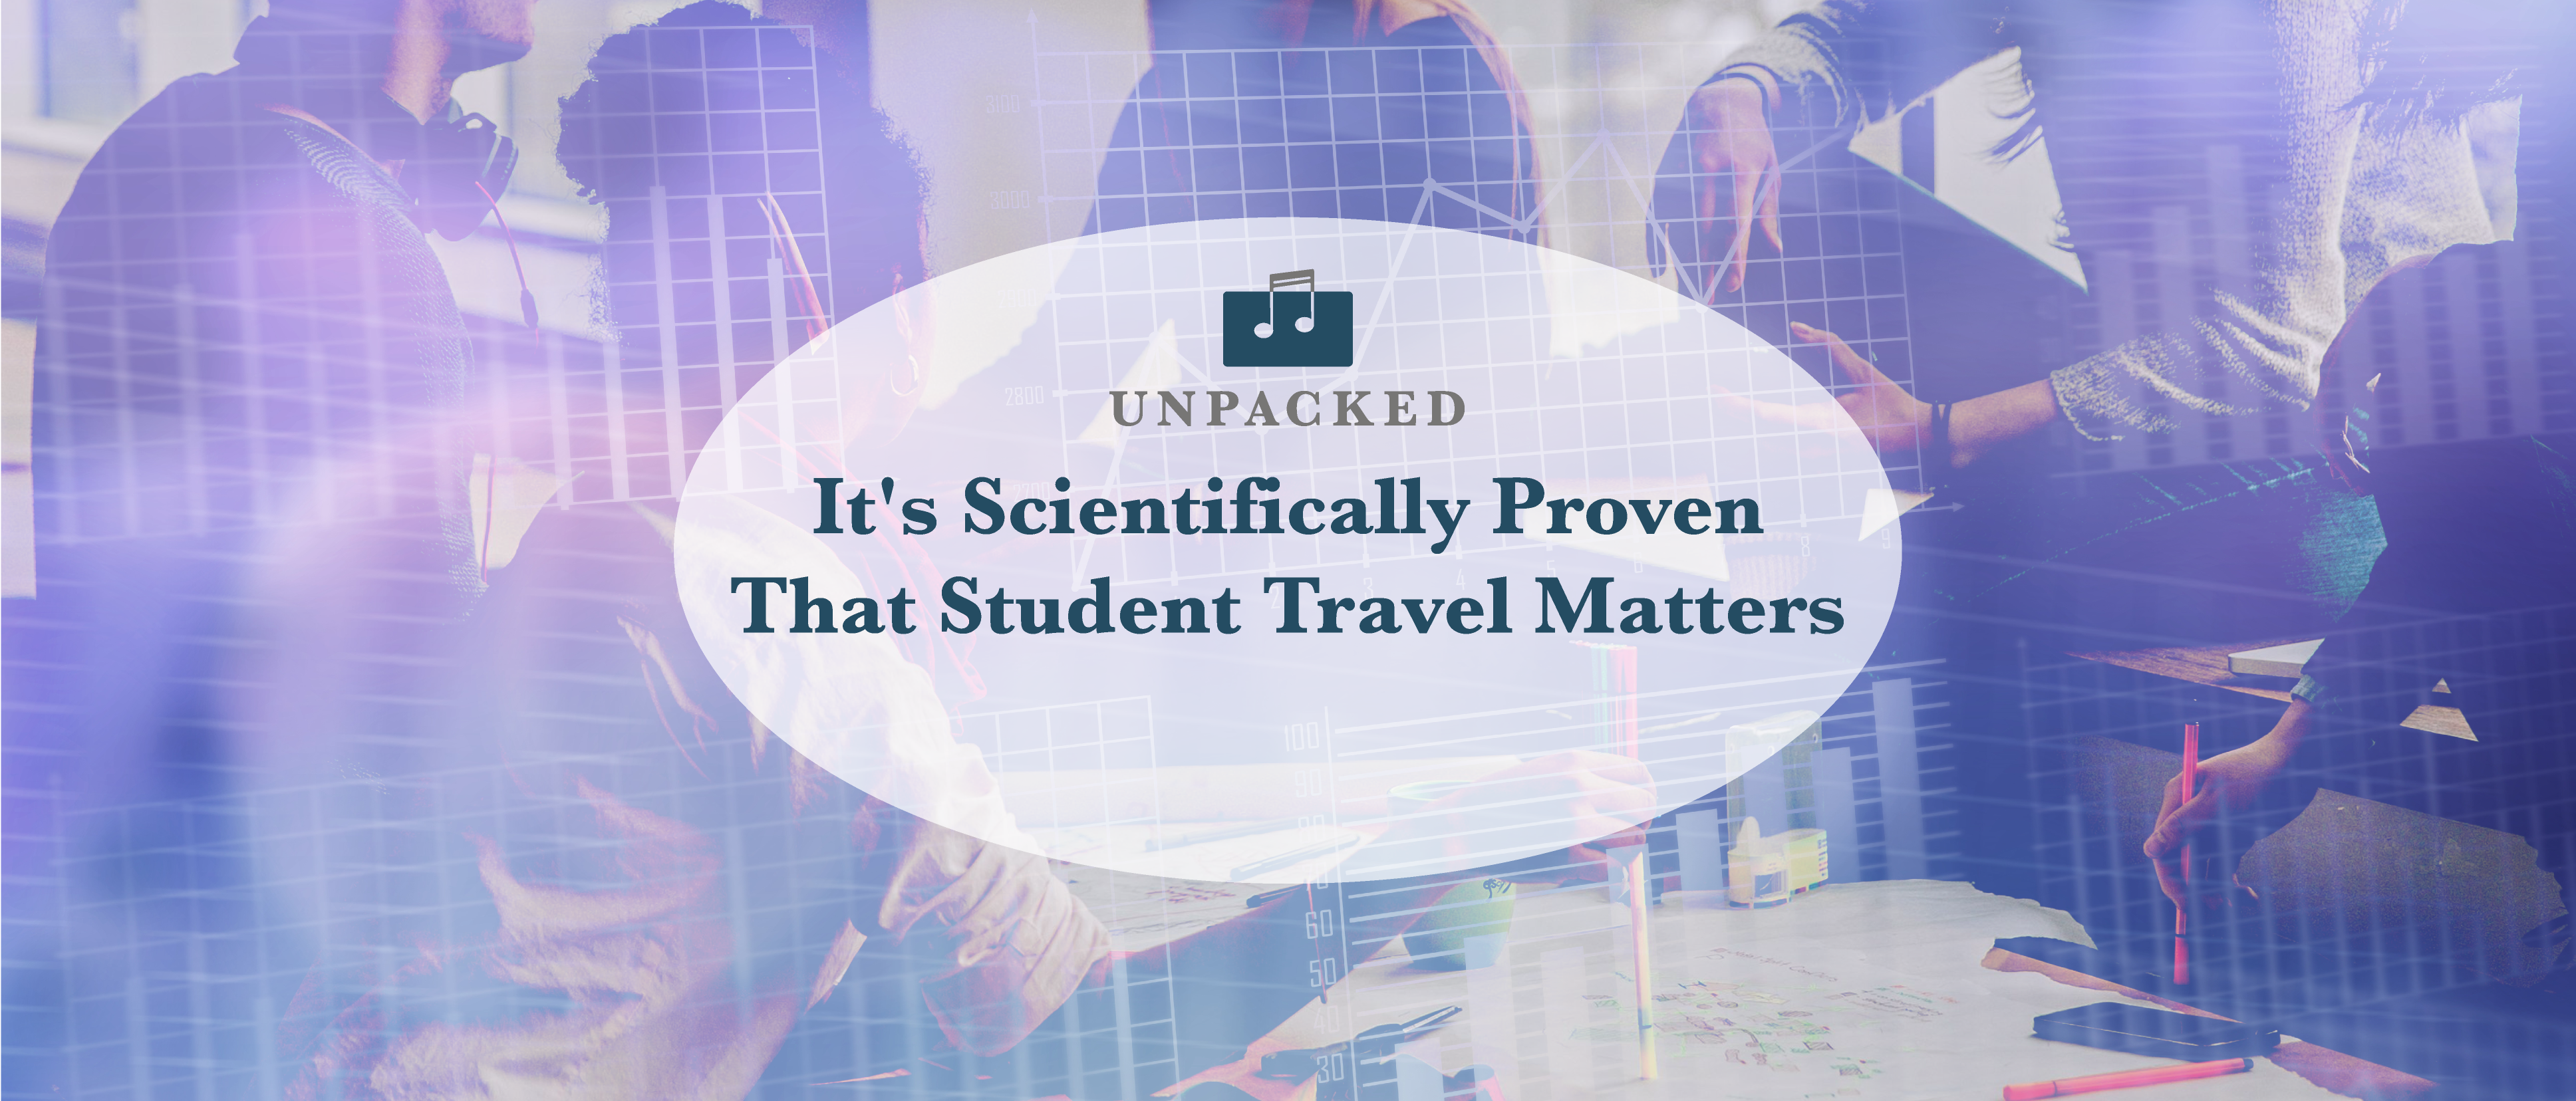 IT'S SCIENTIFICALLY PROVEN THAT STUDENT TRAVEL MATTERS